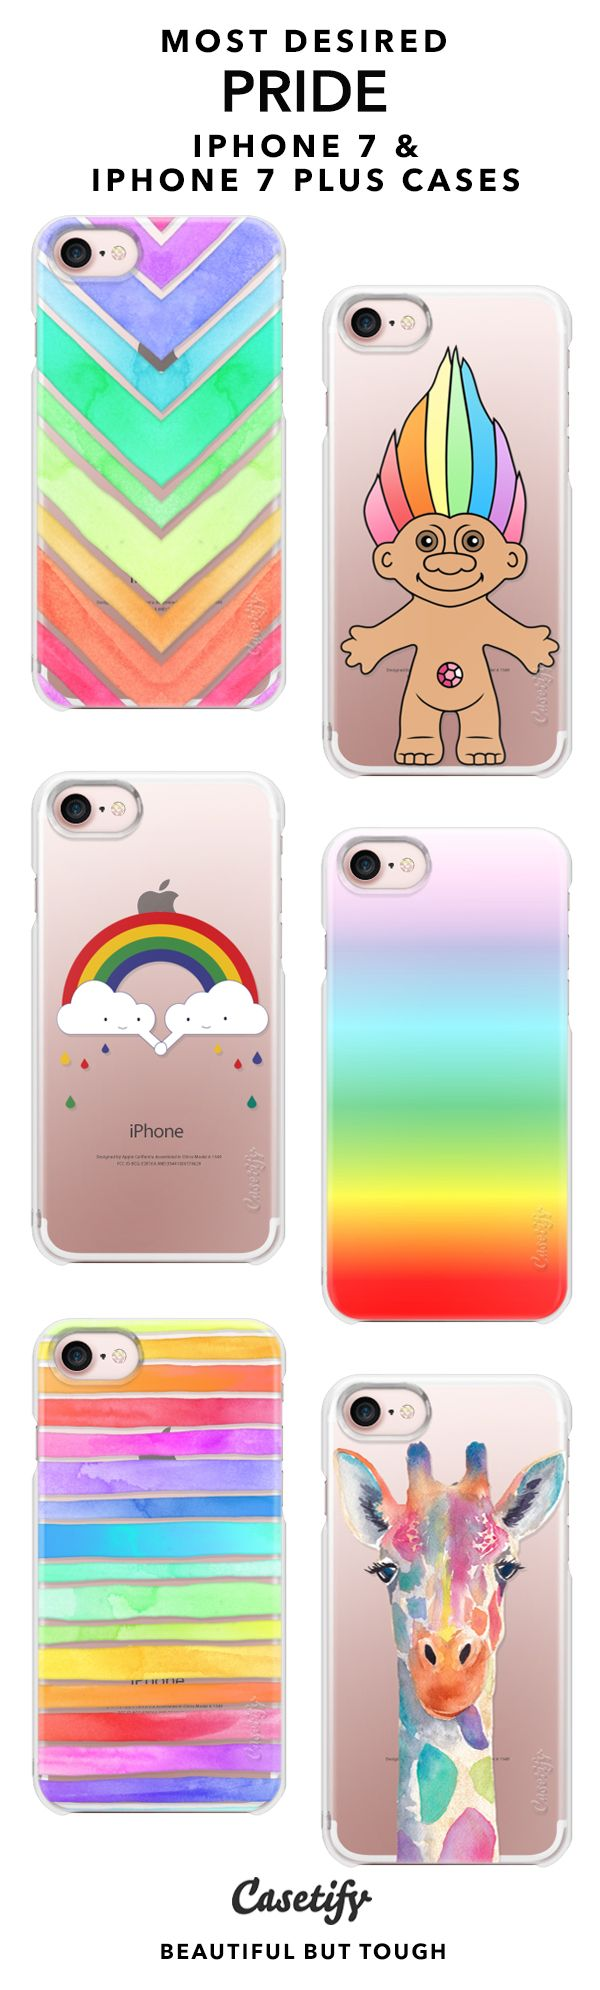 Love is beautiful, it thus wins. | Most Desire Pride iPhone 7 Cases and iPhone 7 Plus Cases for Rainbow Lovers. For more Pride Cases, shop them here ☝☝☝ BEAUTIFUL BUT TOUGH ✨ - Party, Crafts, Loom, Colors, Rain, Pride, Love